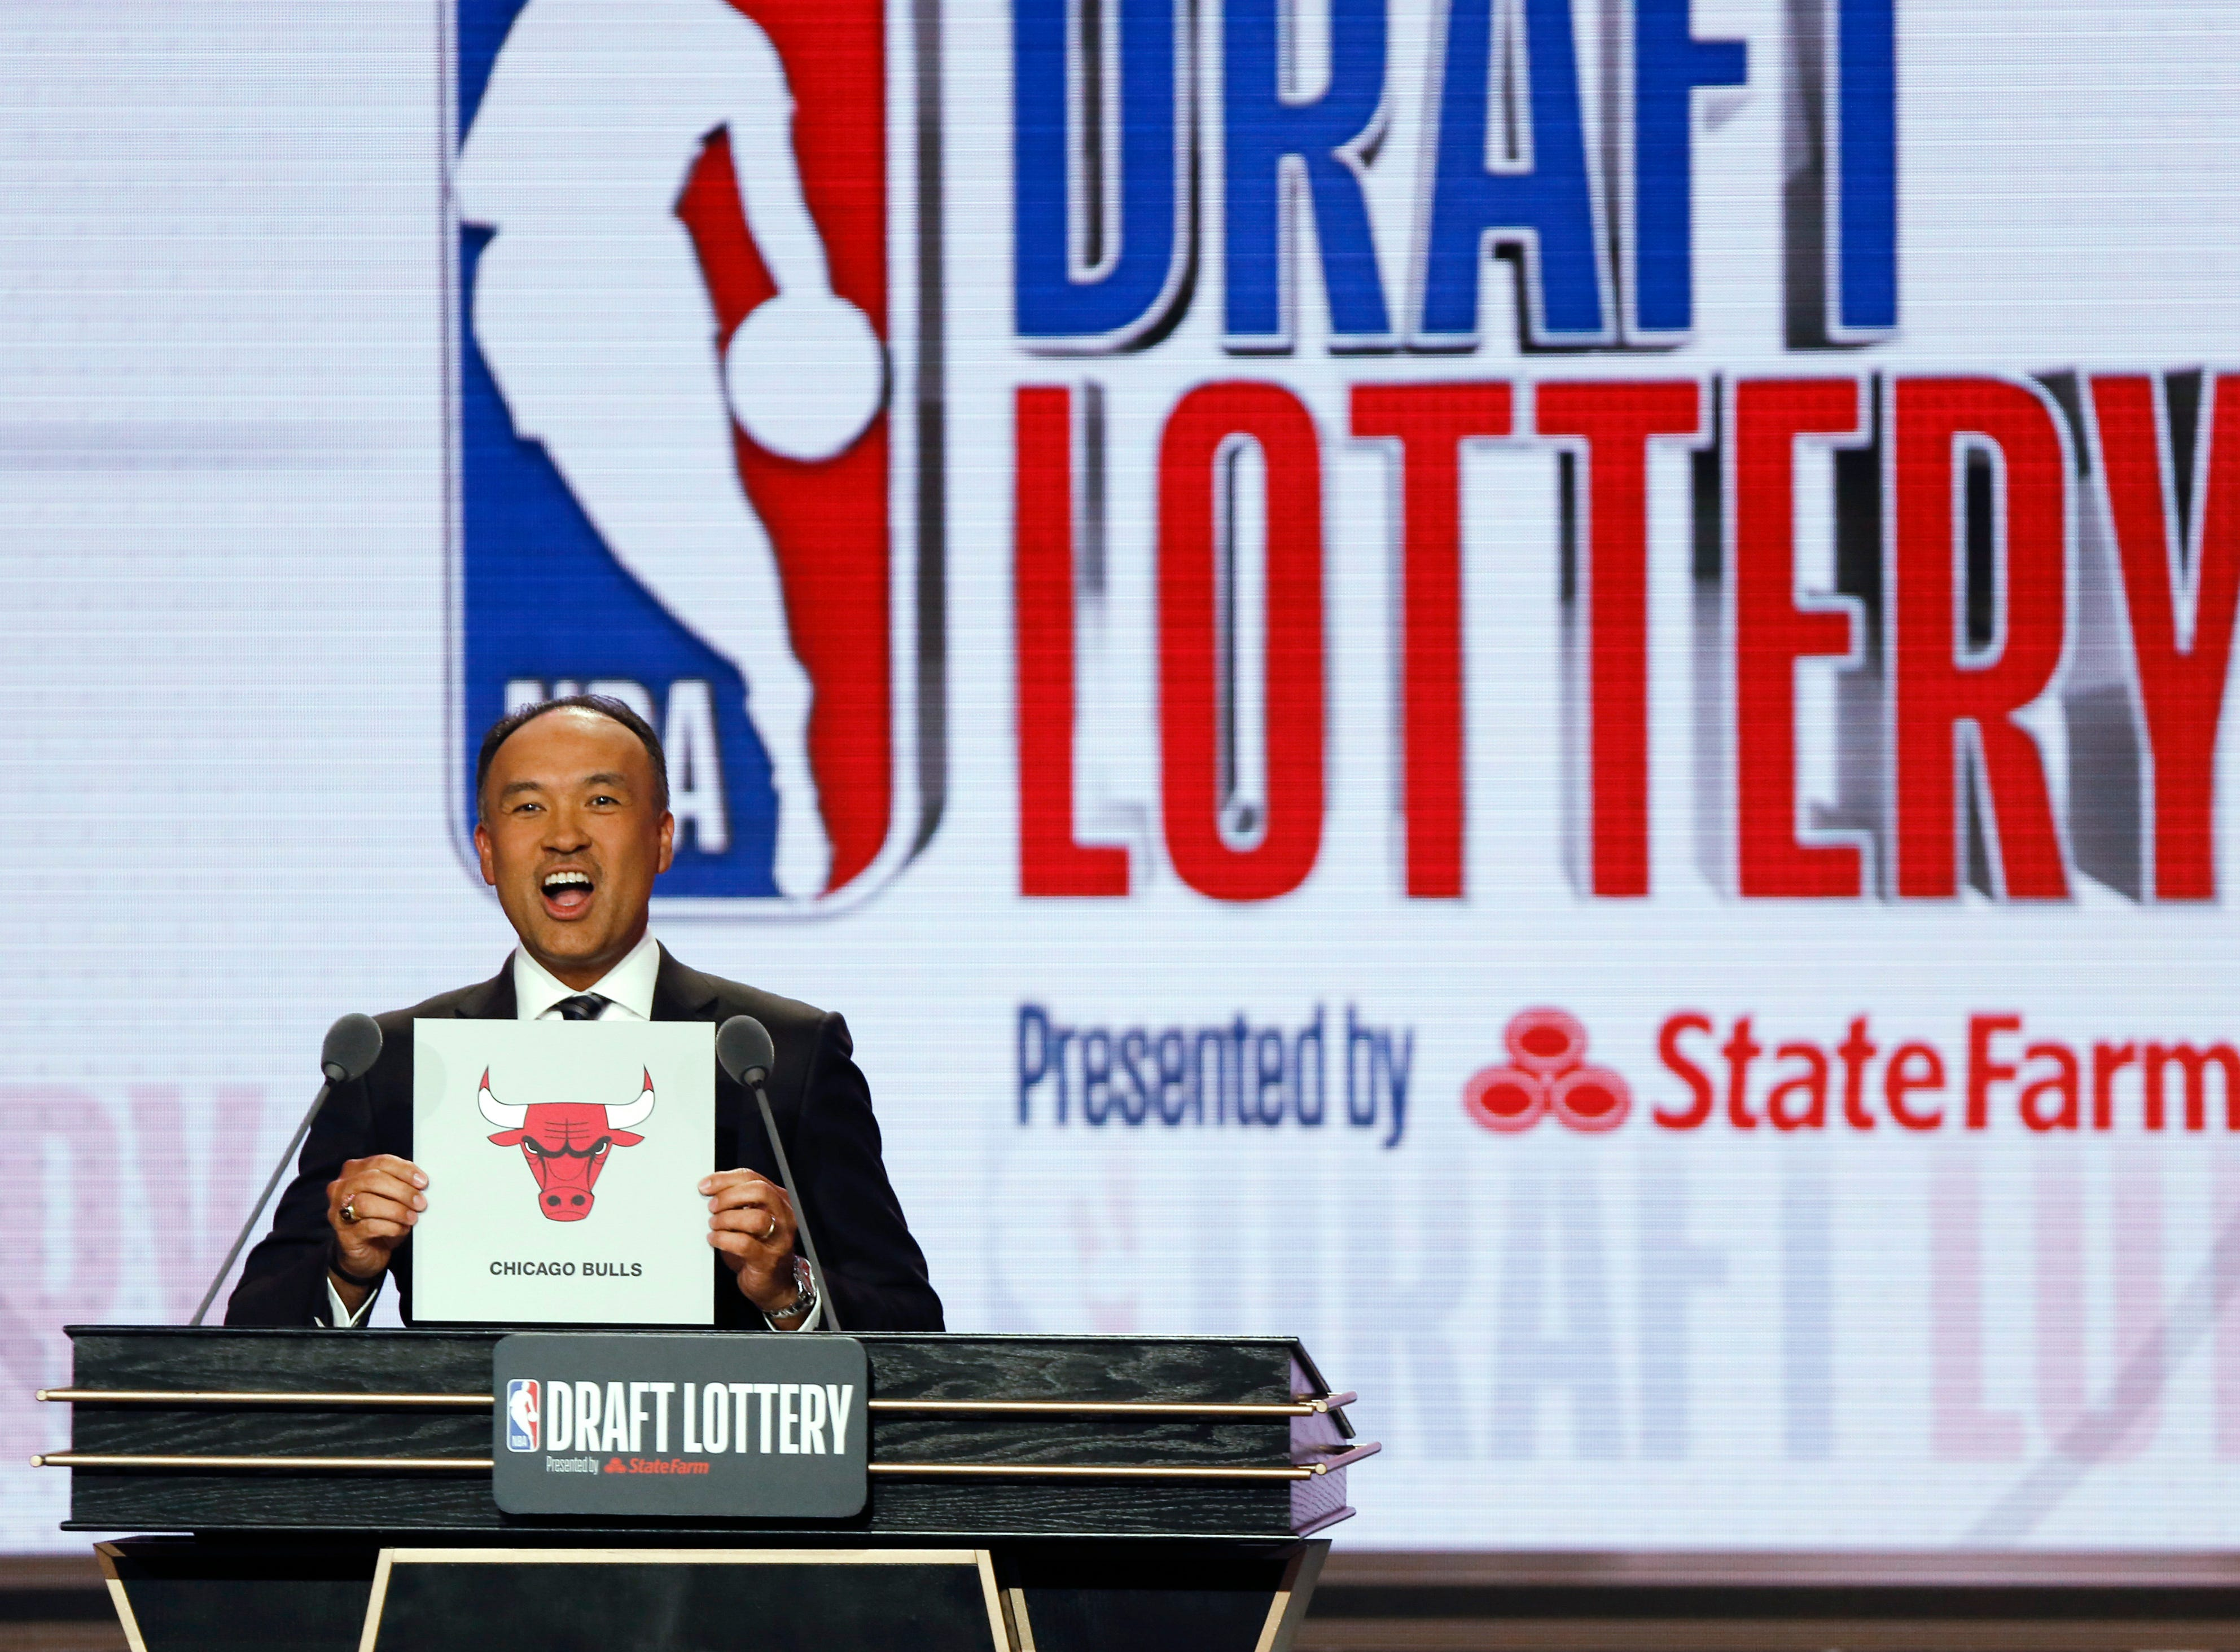 NBA Deputy Commissioner Mark Tatum announces that the Chicago Bulls had won the seventh pick during the NBA basketball draft lottery Tuesday, May 14, 2019, in Chicago. (AP Photo/Nuccio DiNuzzo)